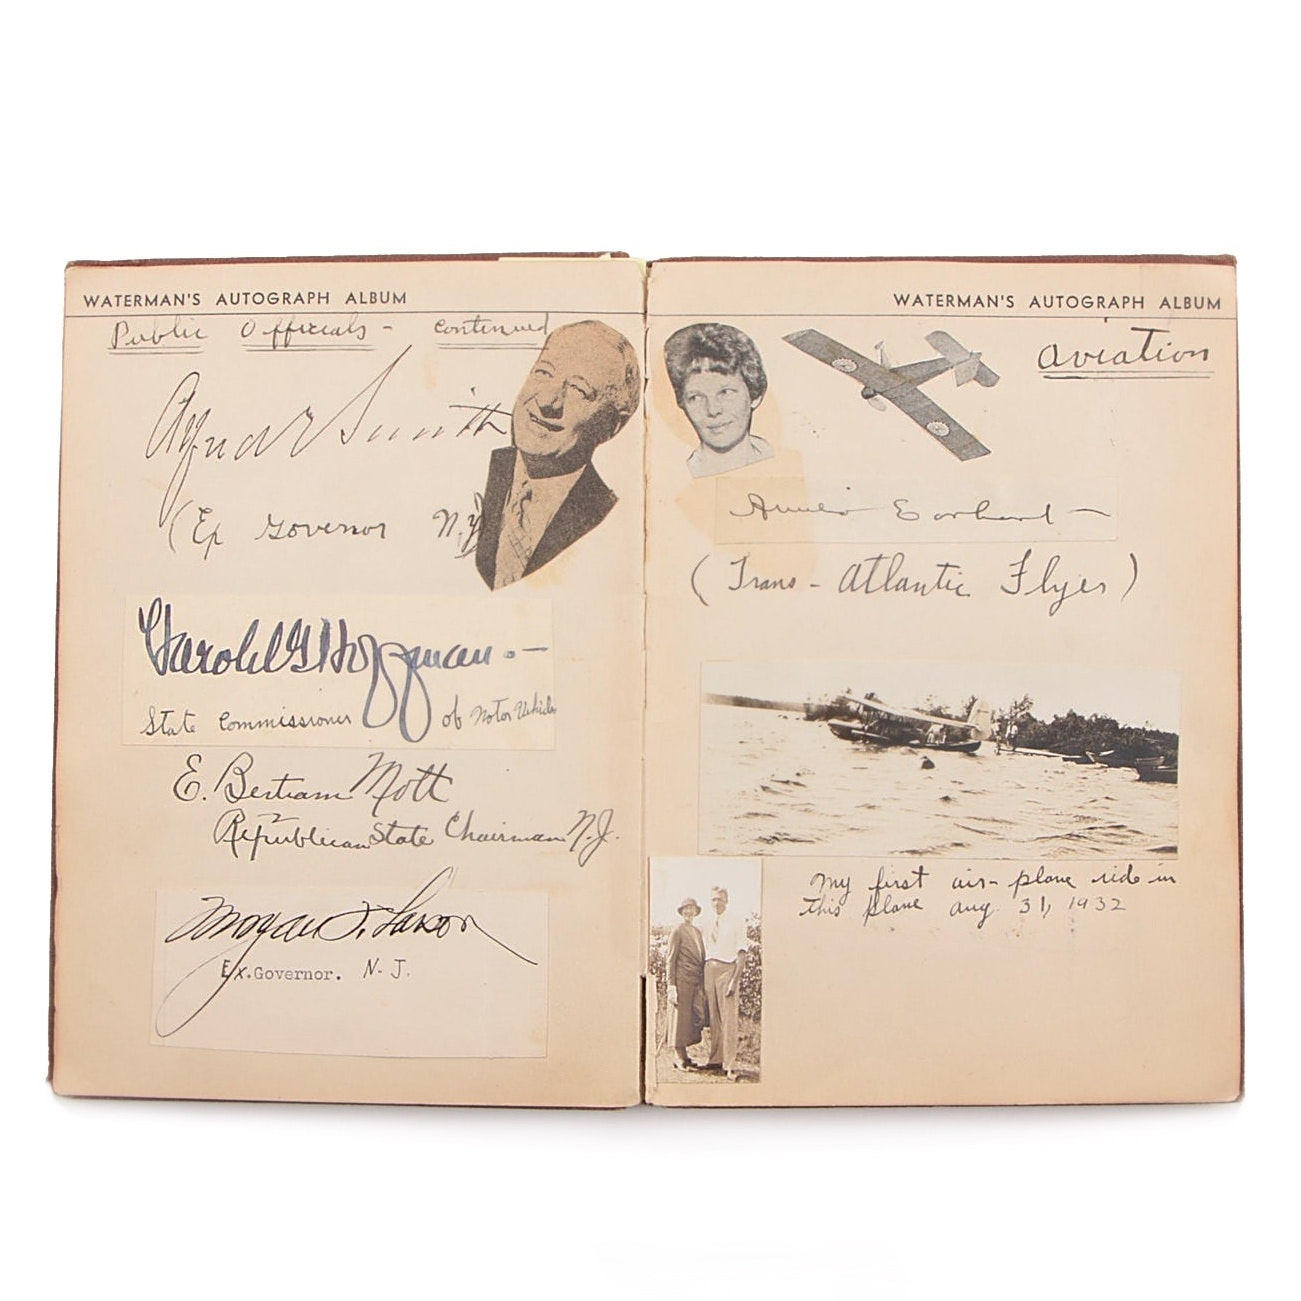 Waterman's Autograph Album with Amelia Earhart, FDR, Hoover and Calvin Coolidge